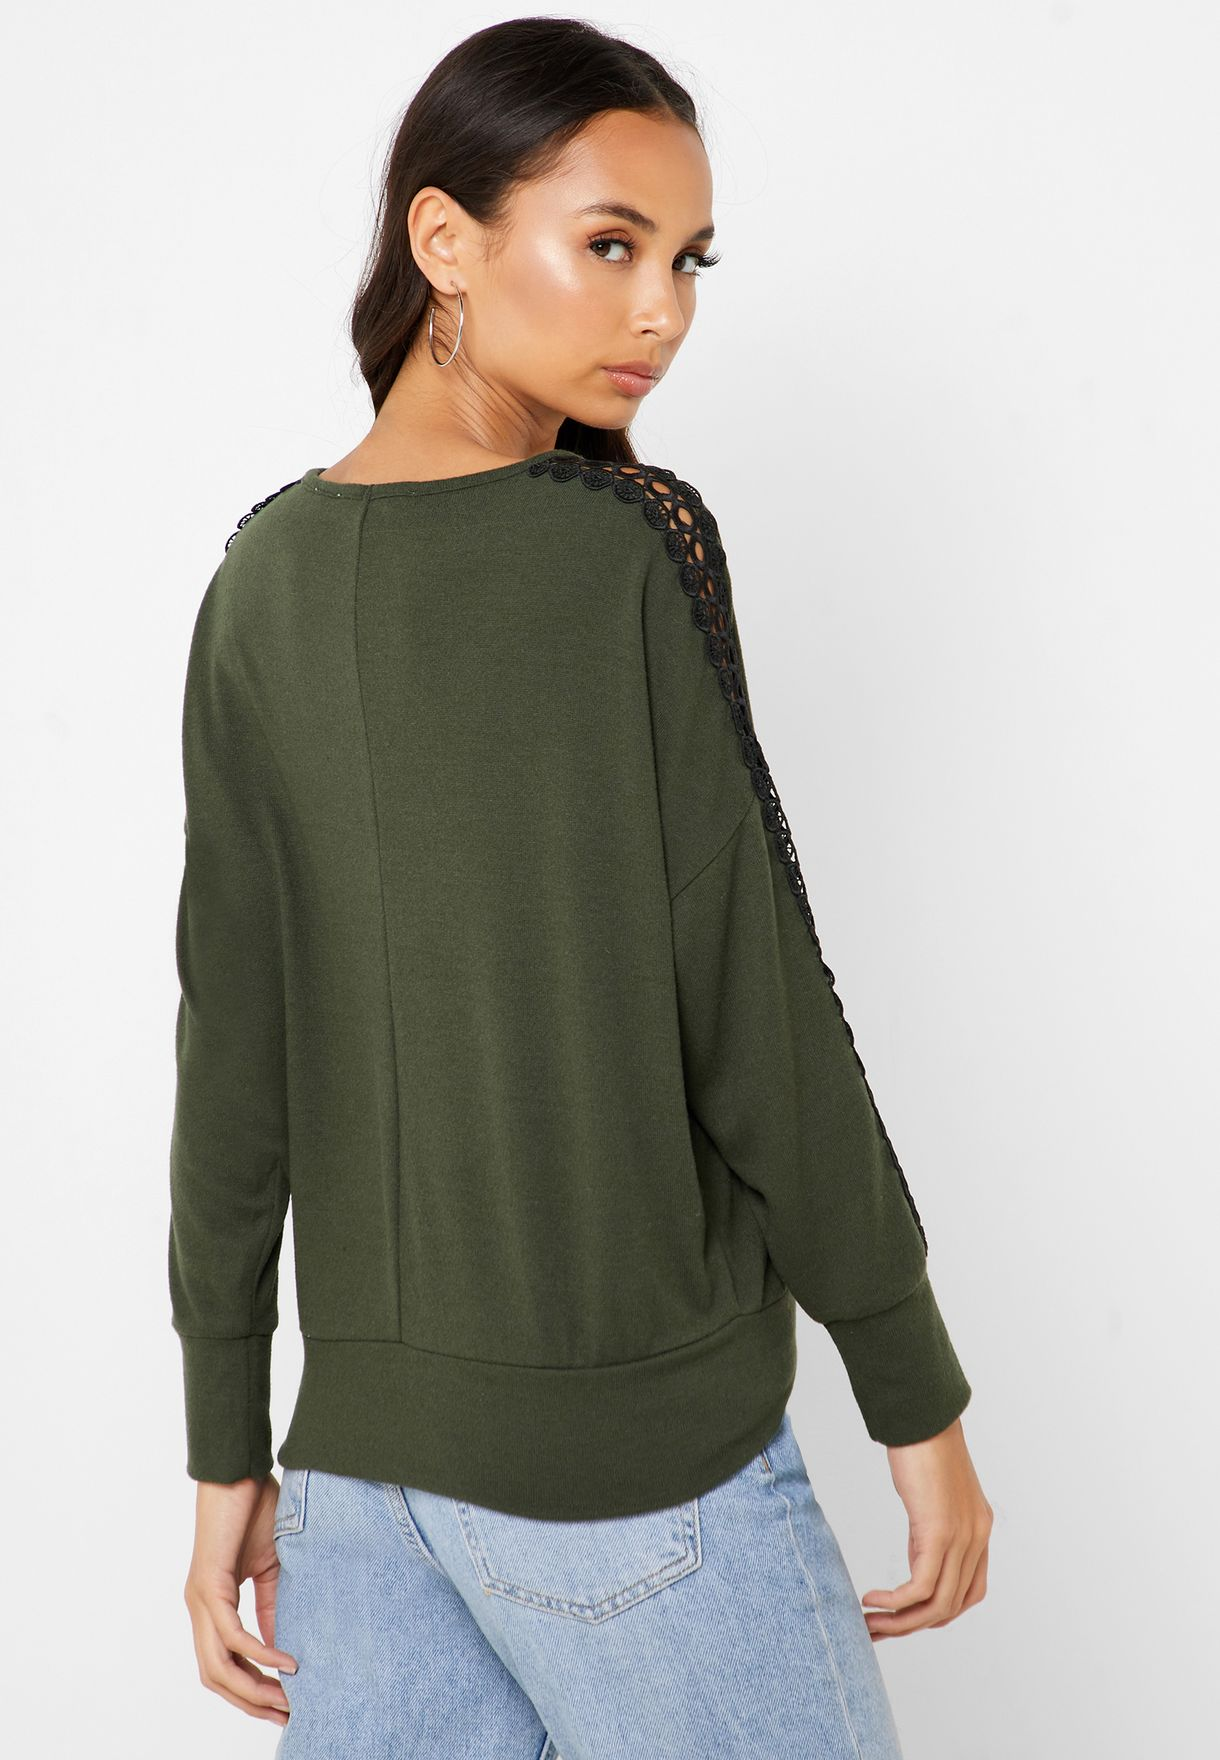 Lace Detail Textured Sweaters